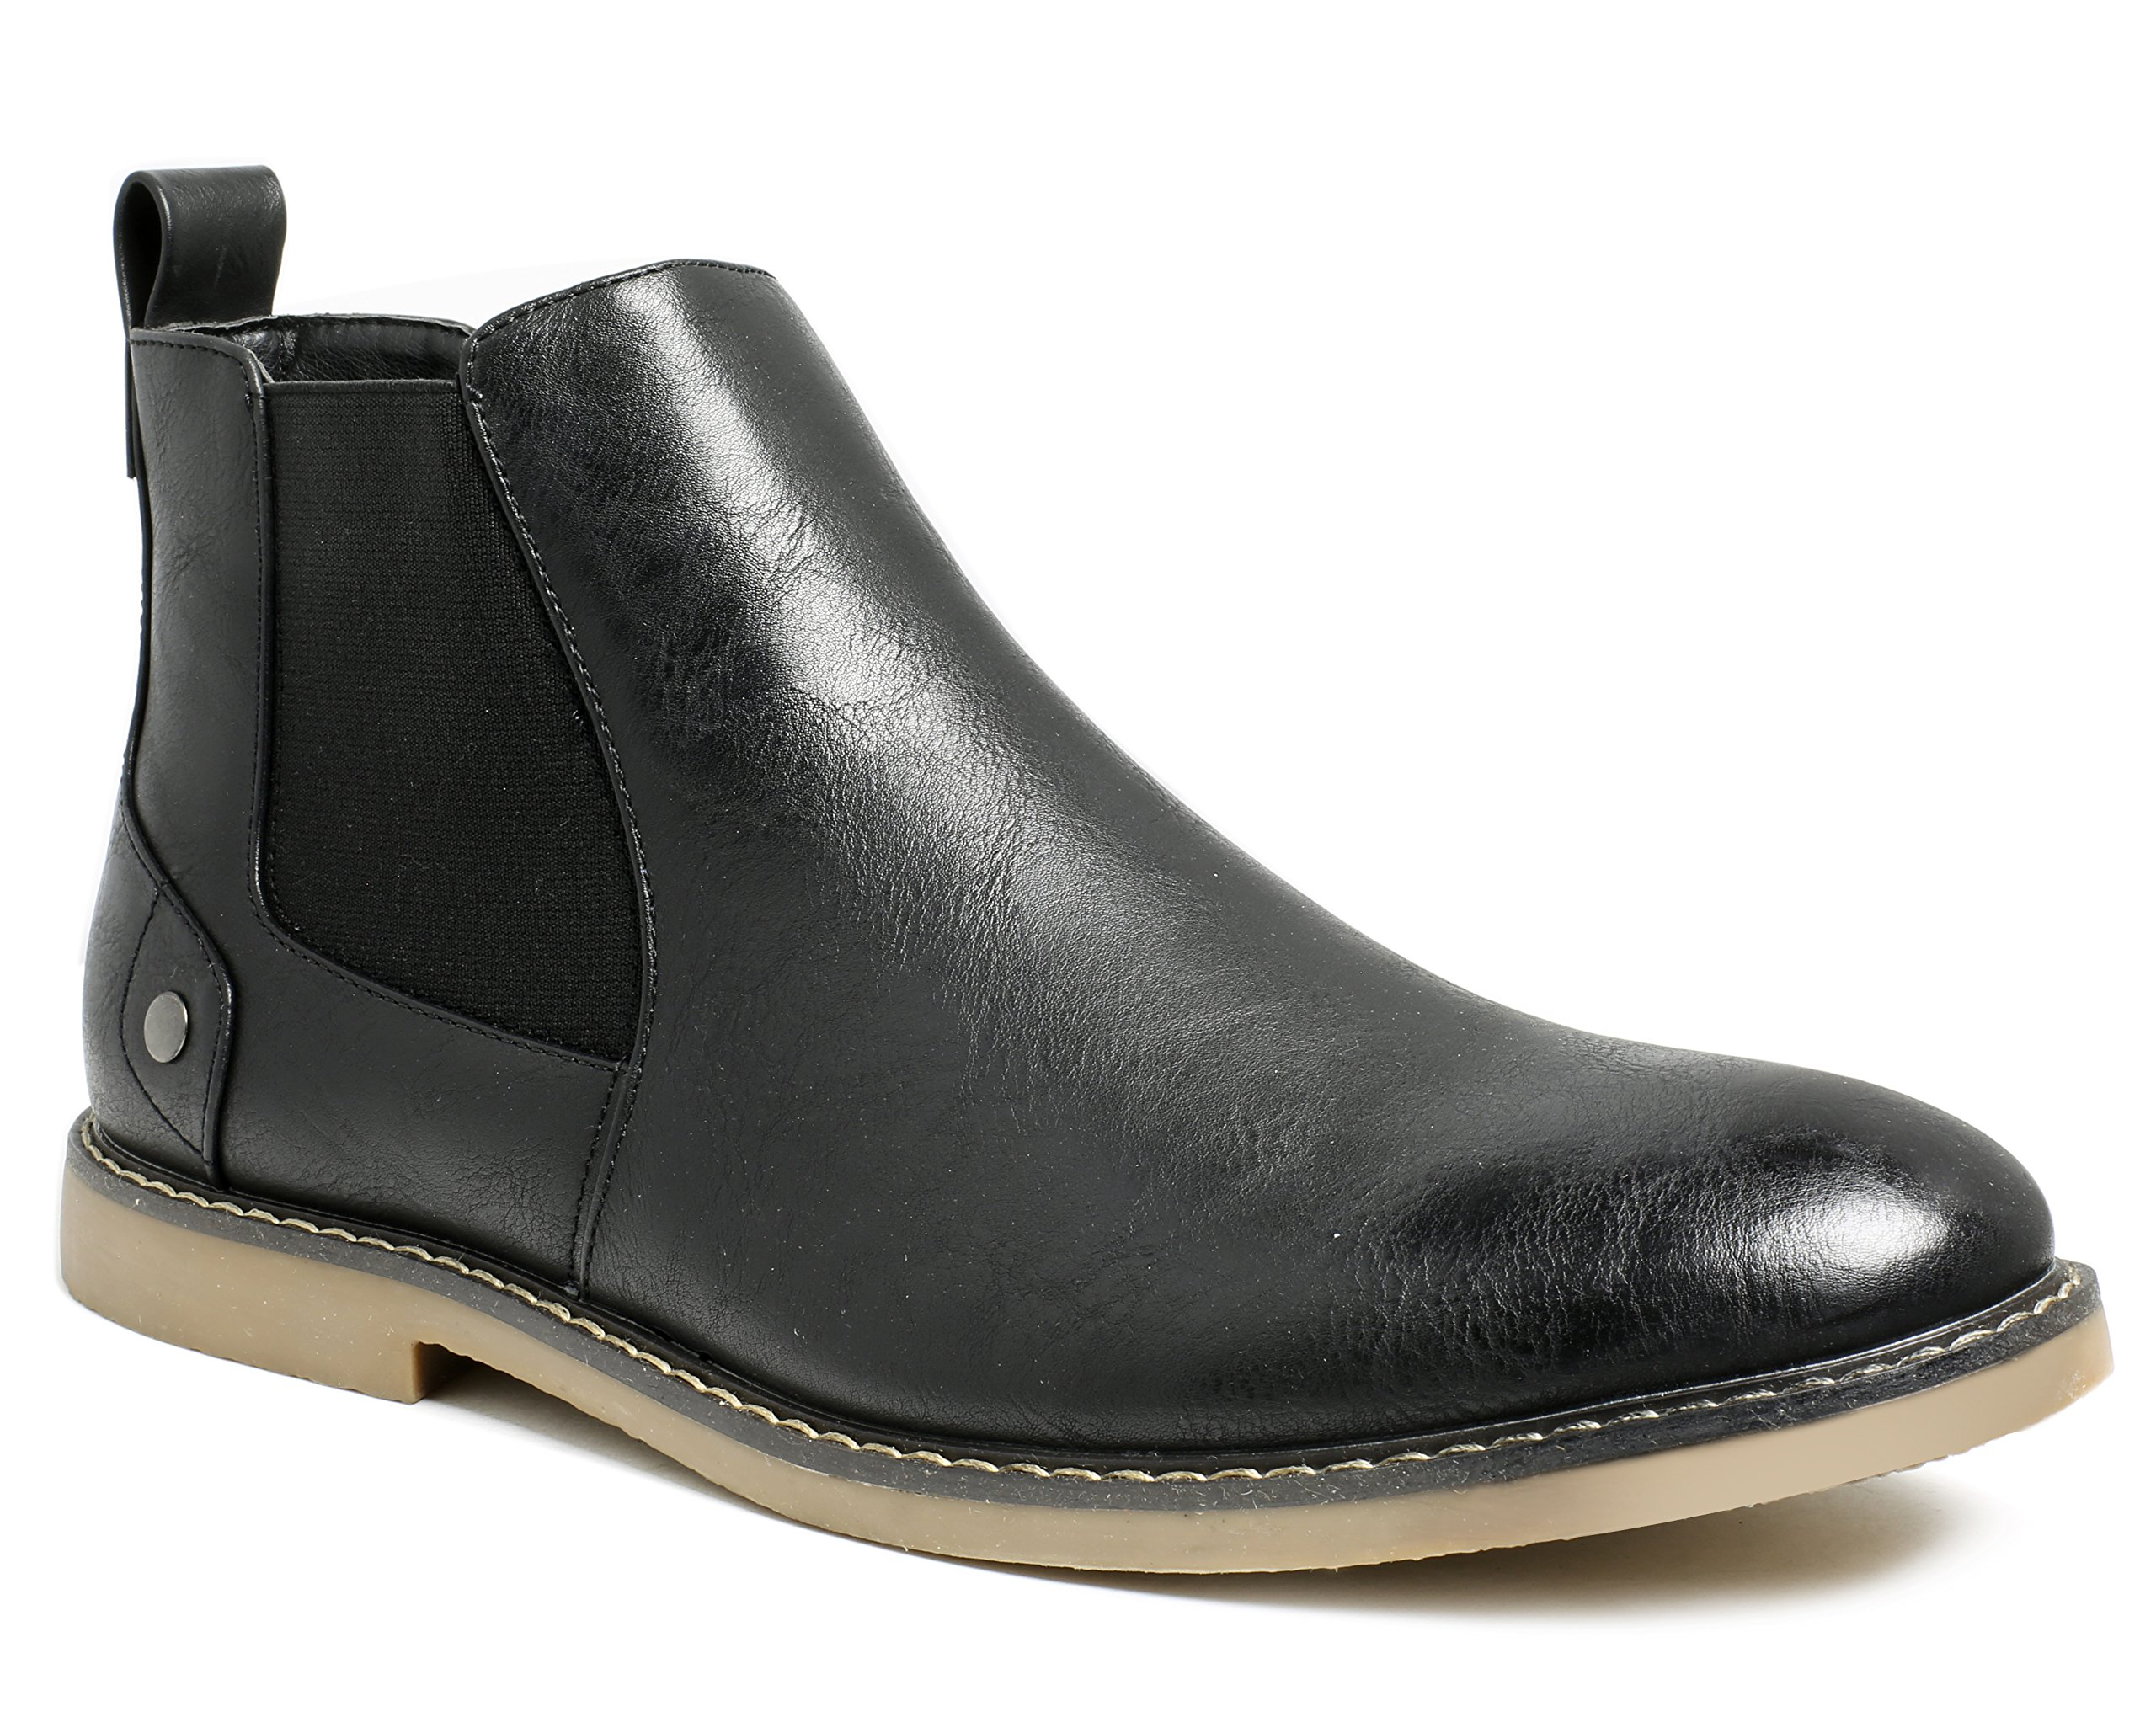 f33ca56cca97 PARTY Mens Chelsea Boots Formal Dress Elastic Casual Ankle Boots for Men  Black 9.5